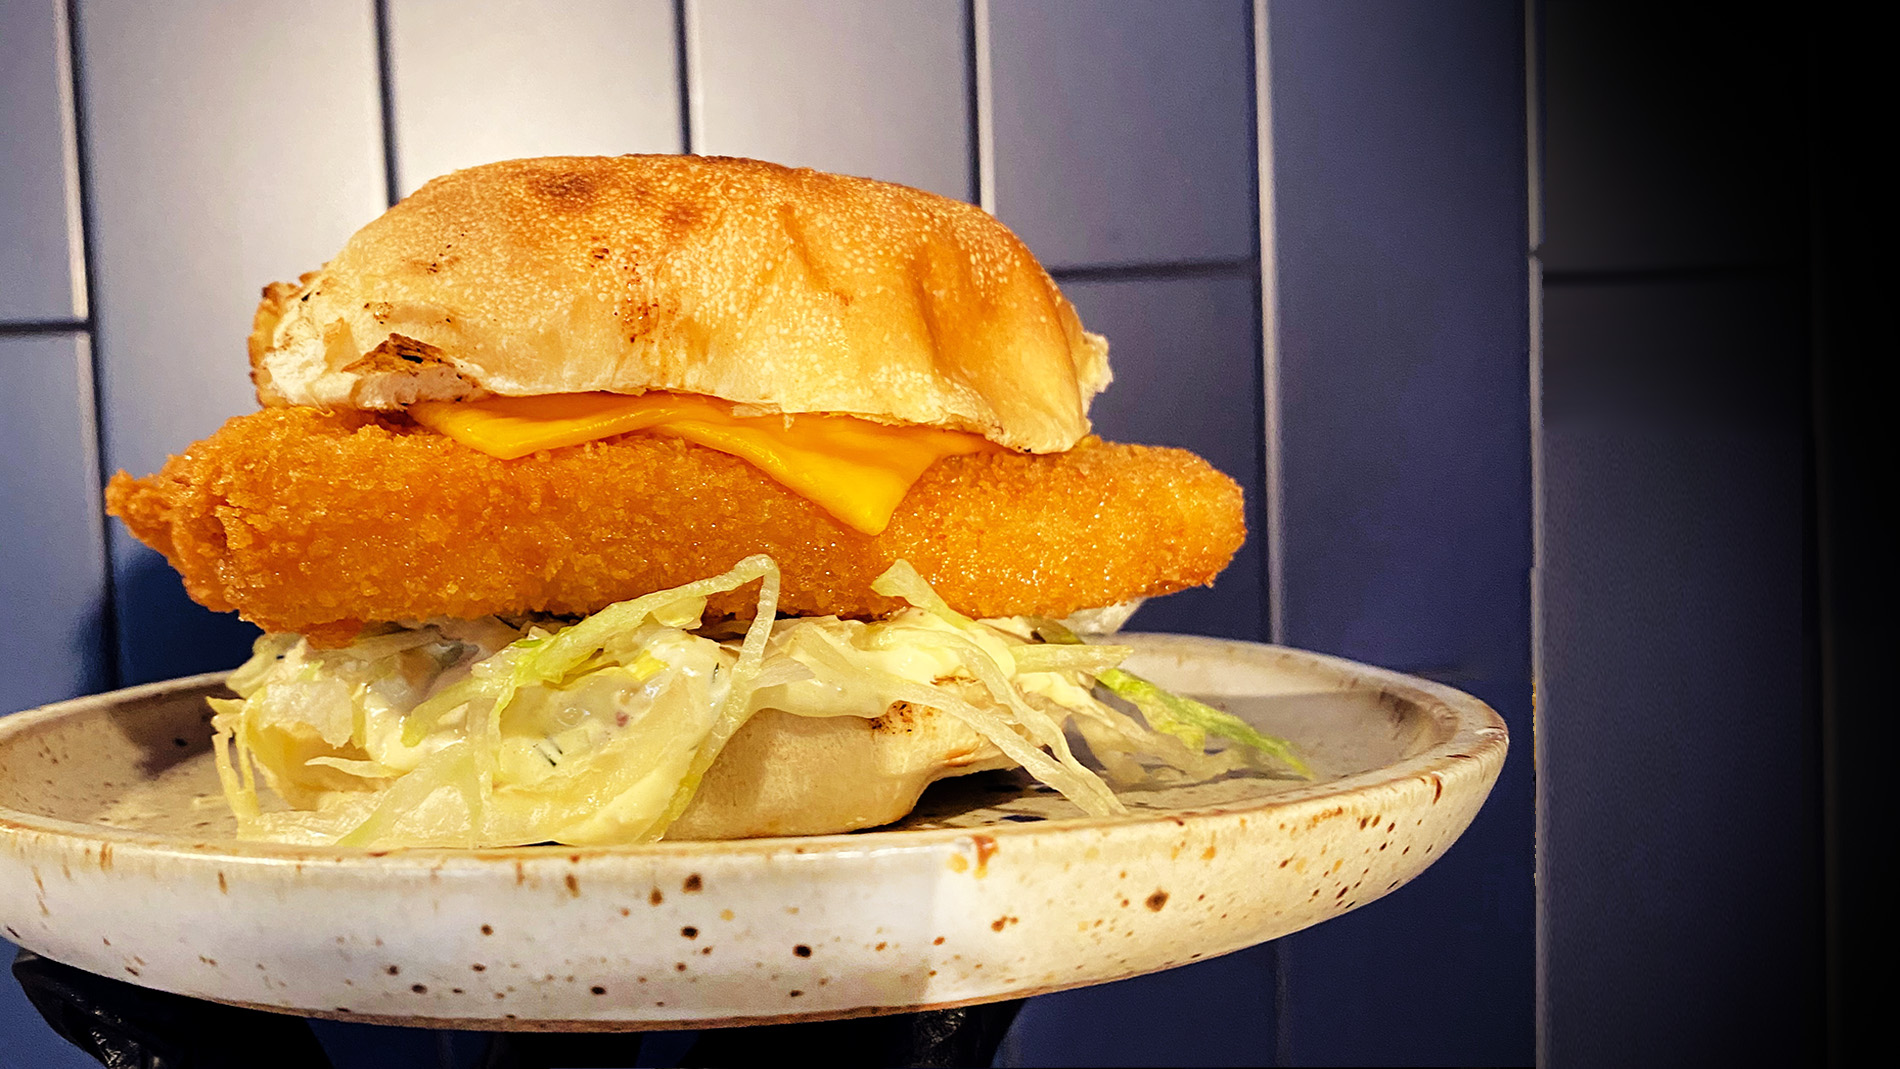 Classic fried fish sandwich from Elmwood in St. Louis, Missouri